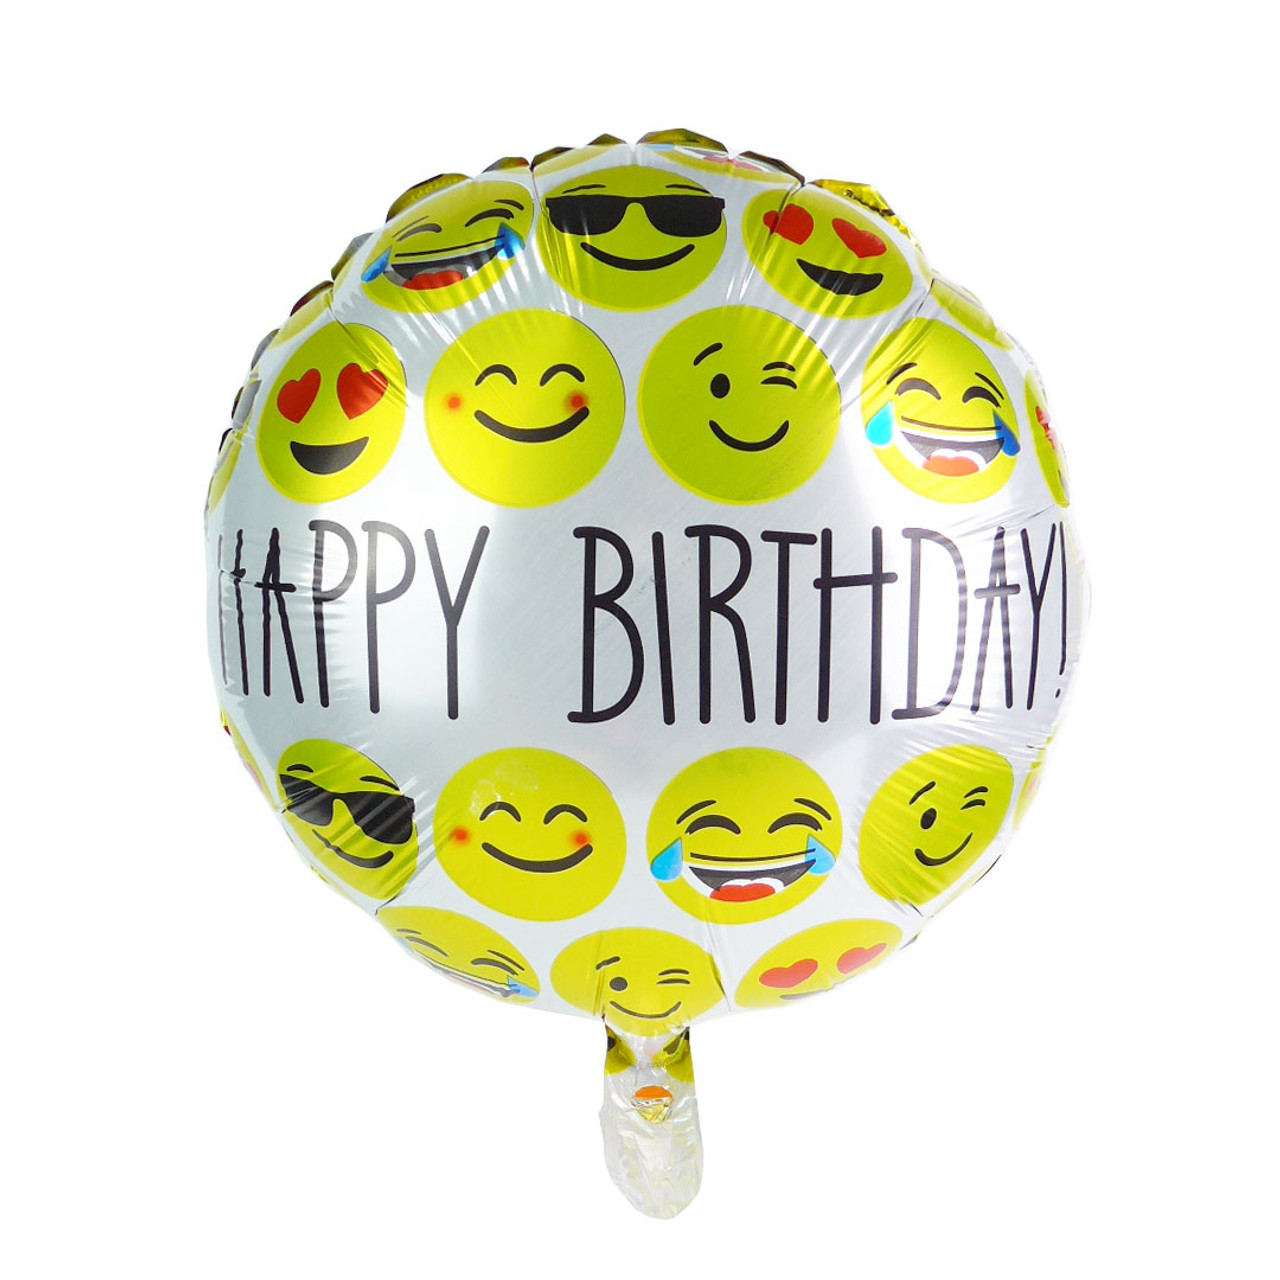 18 Inch Round Happy Birthday Emoji Balloon 989821509446398c2imbypasson